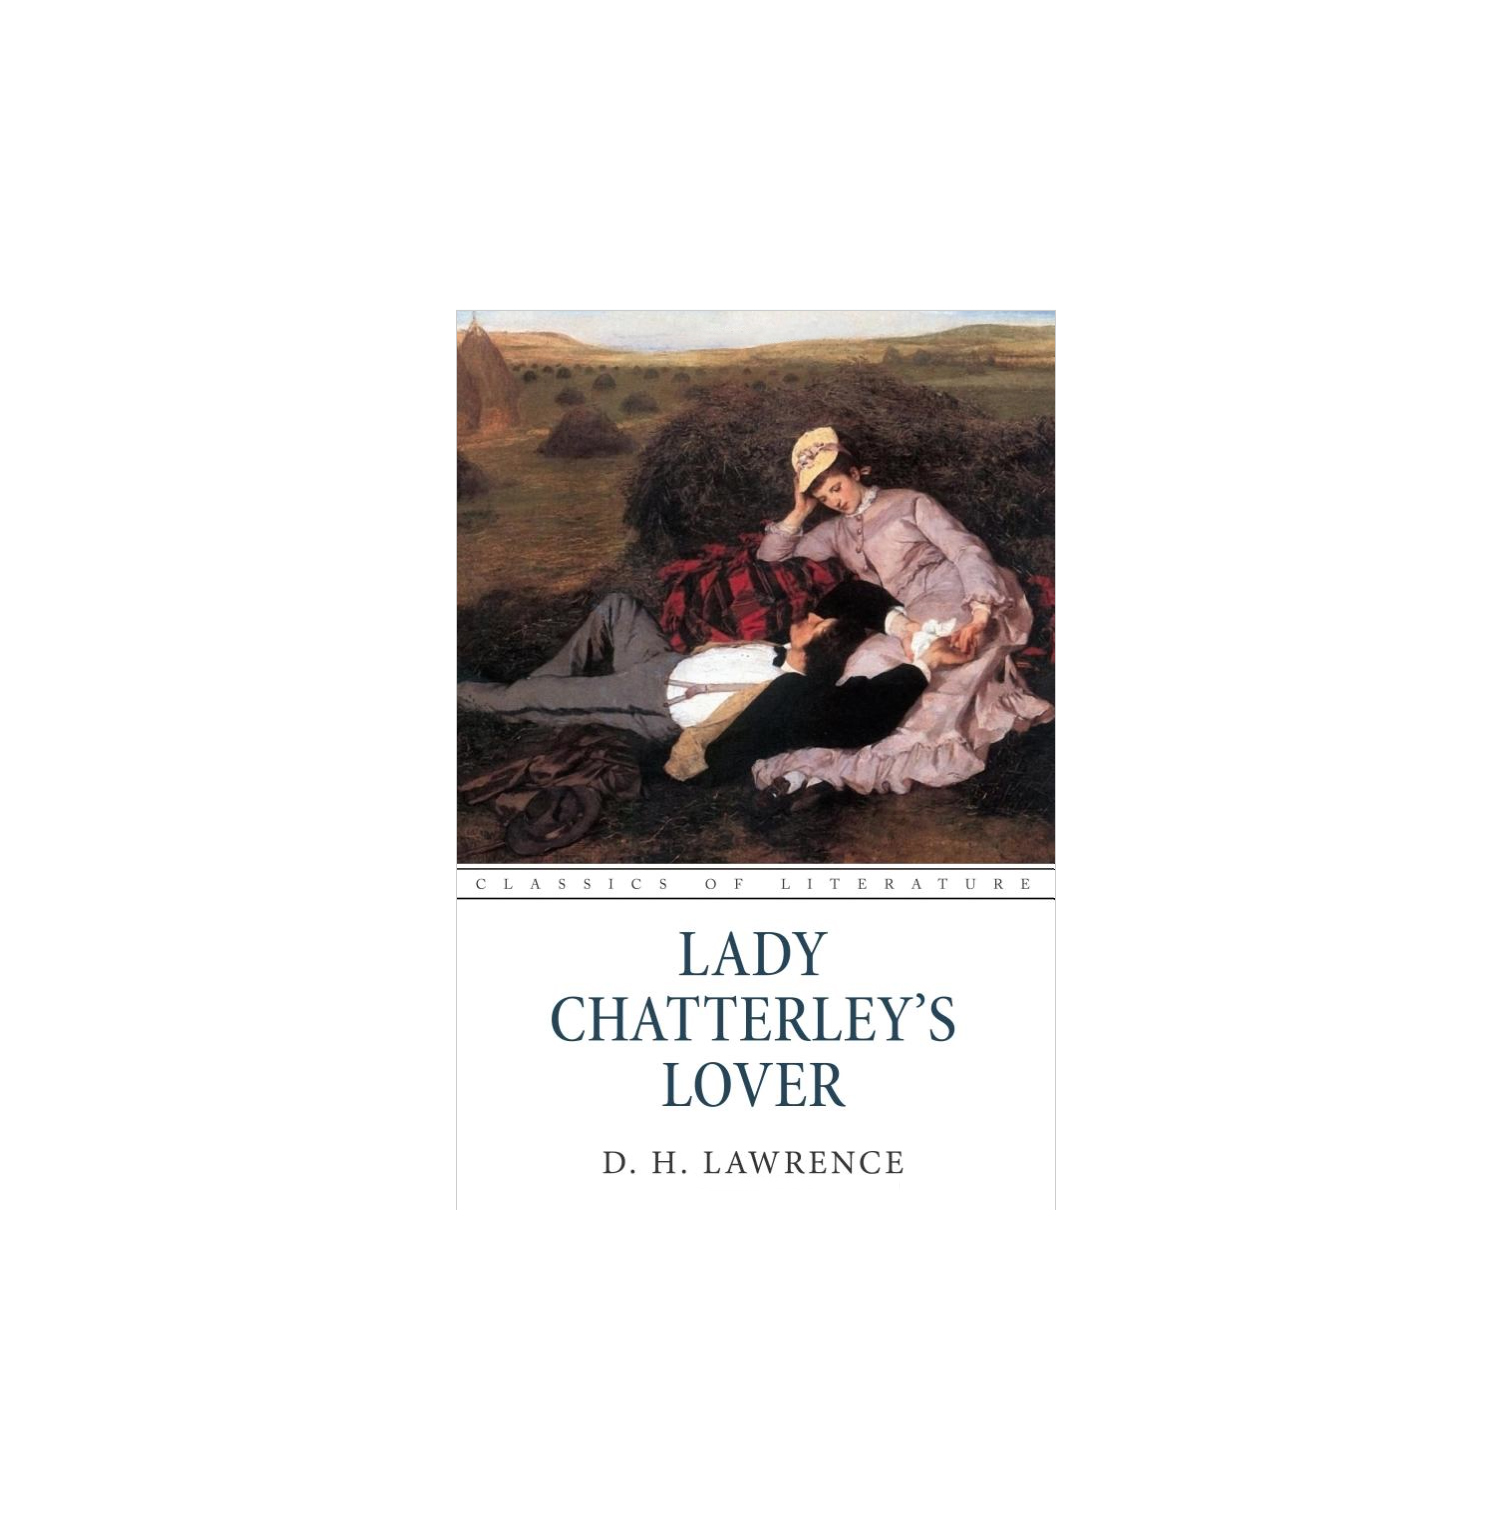 Lady Chatterley's Lover, by D.H. Lawrence